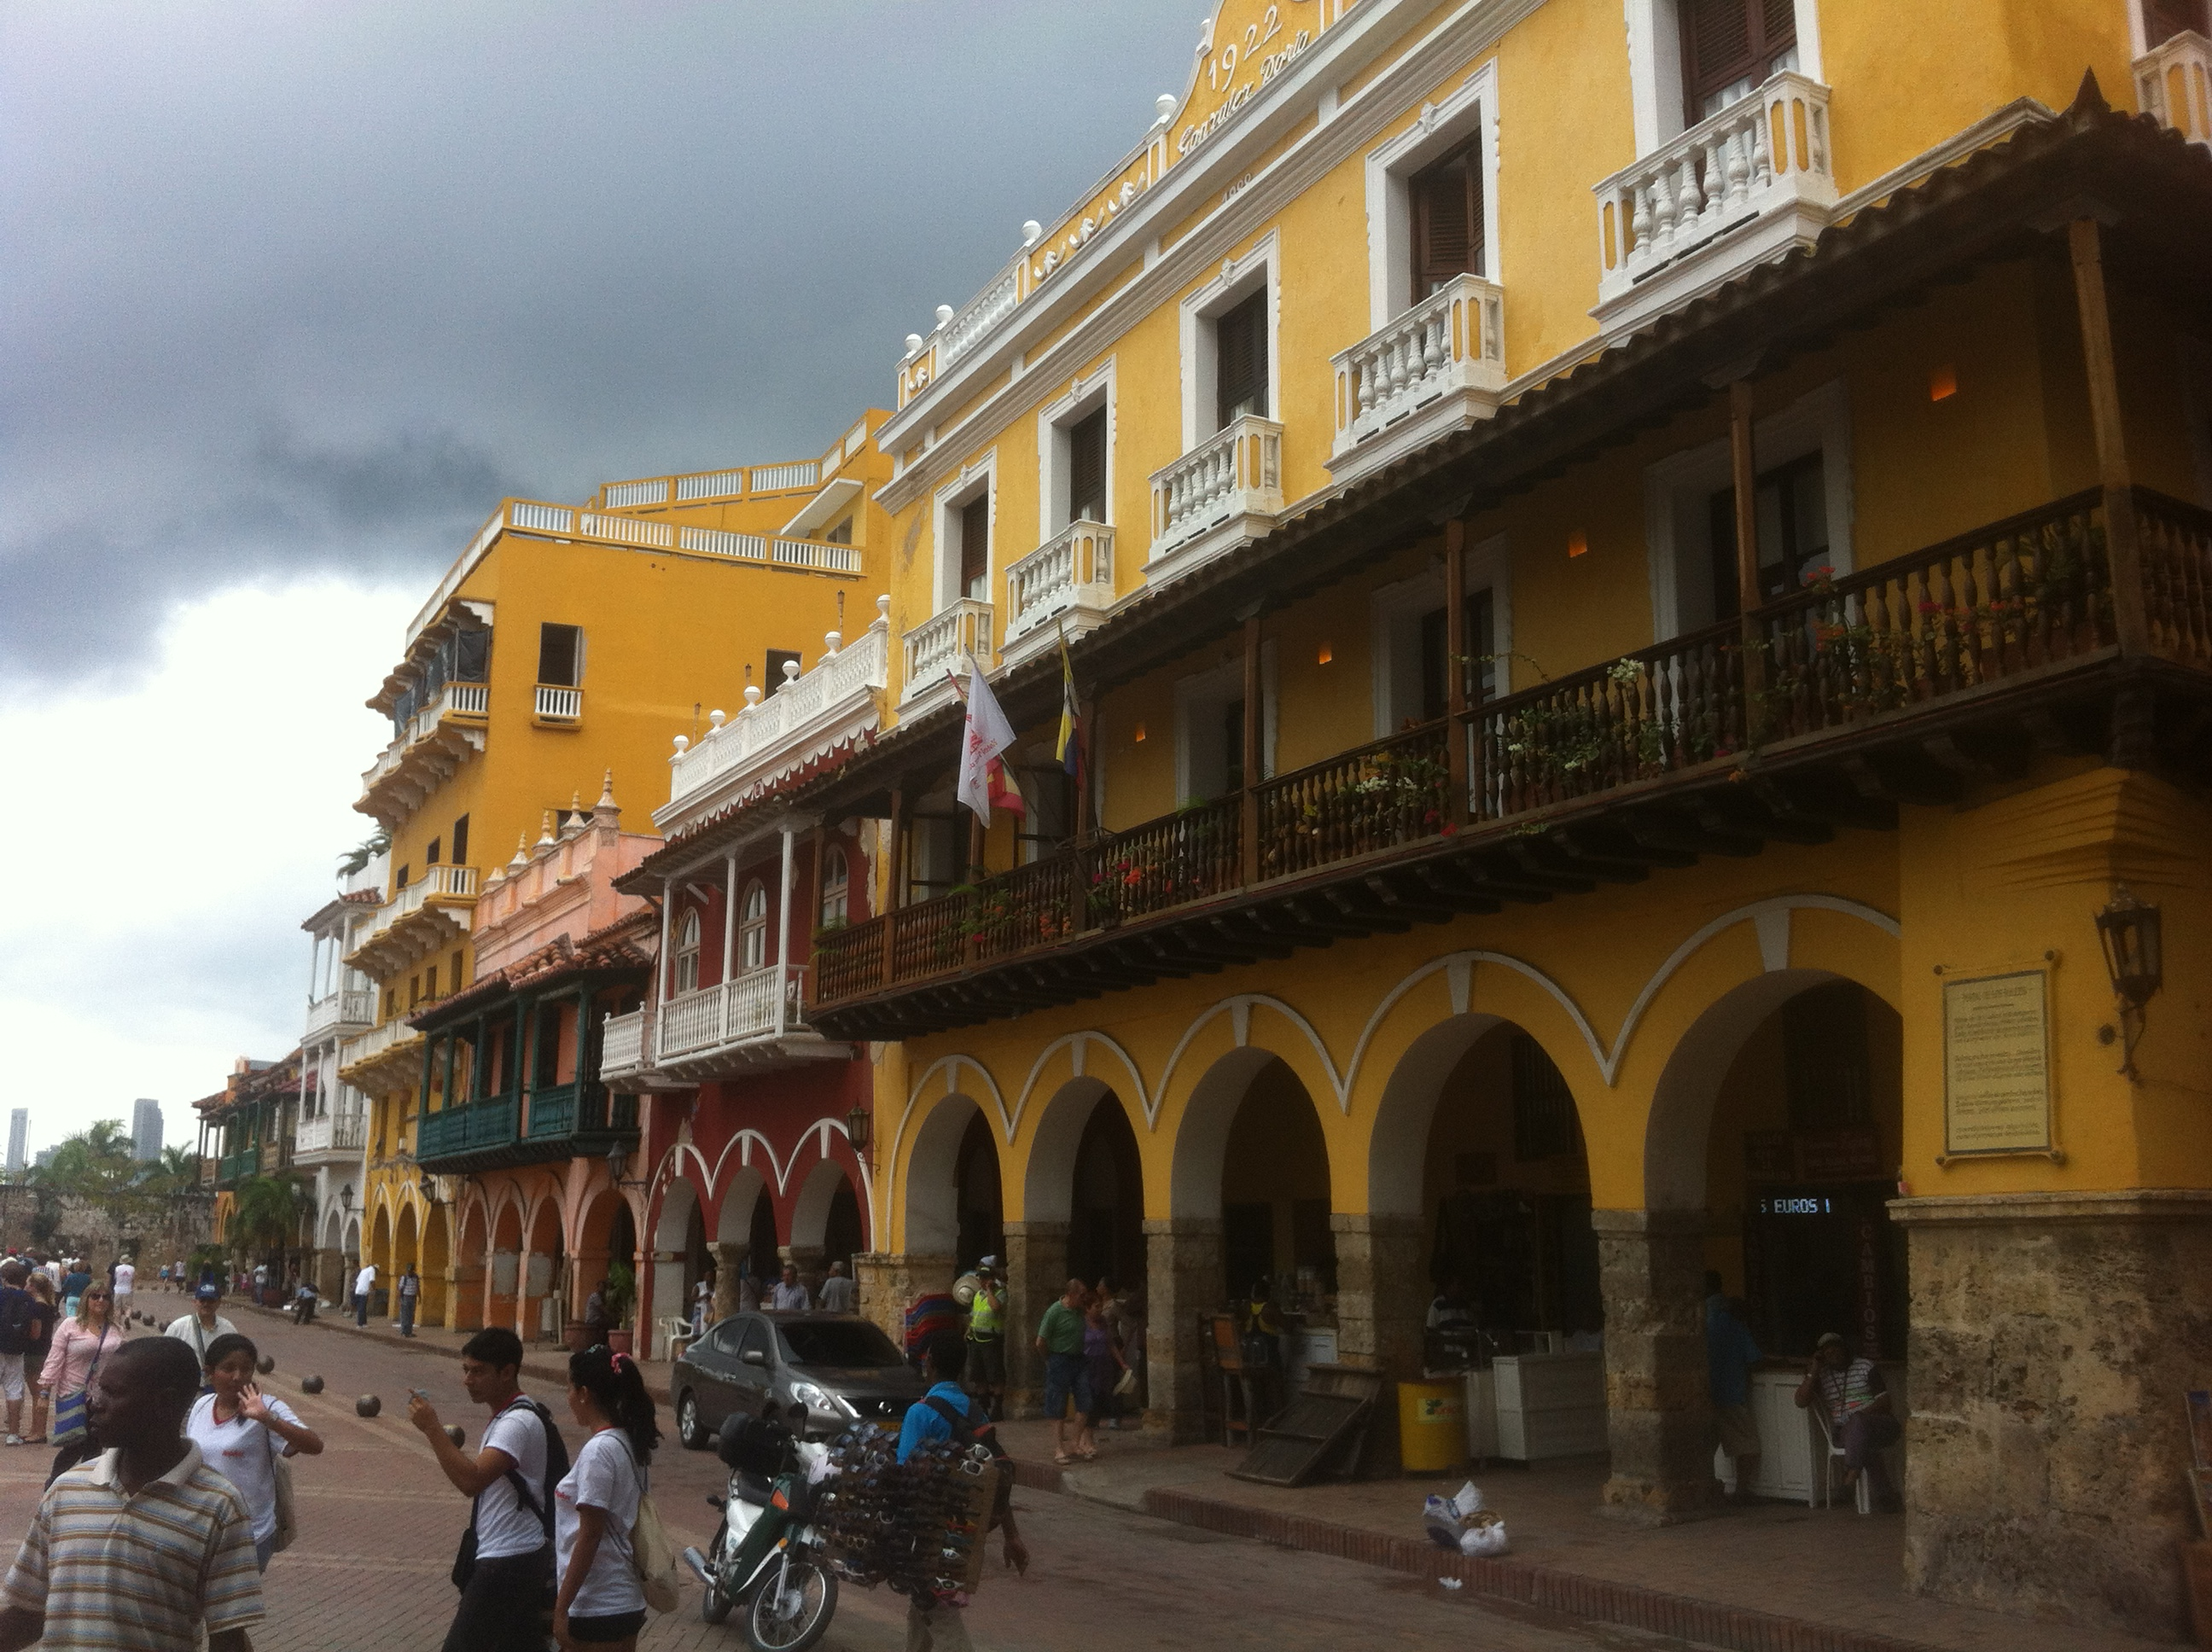 Cartagena, Colombia: The Old Town